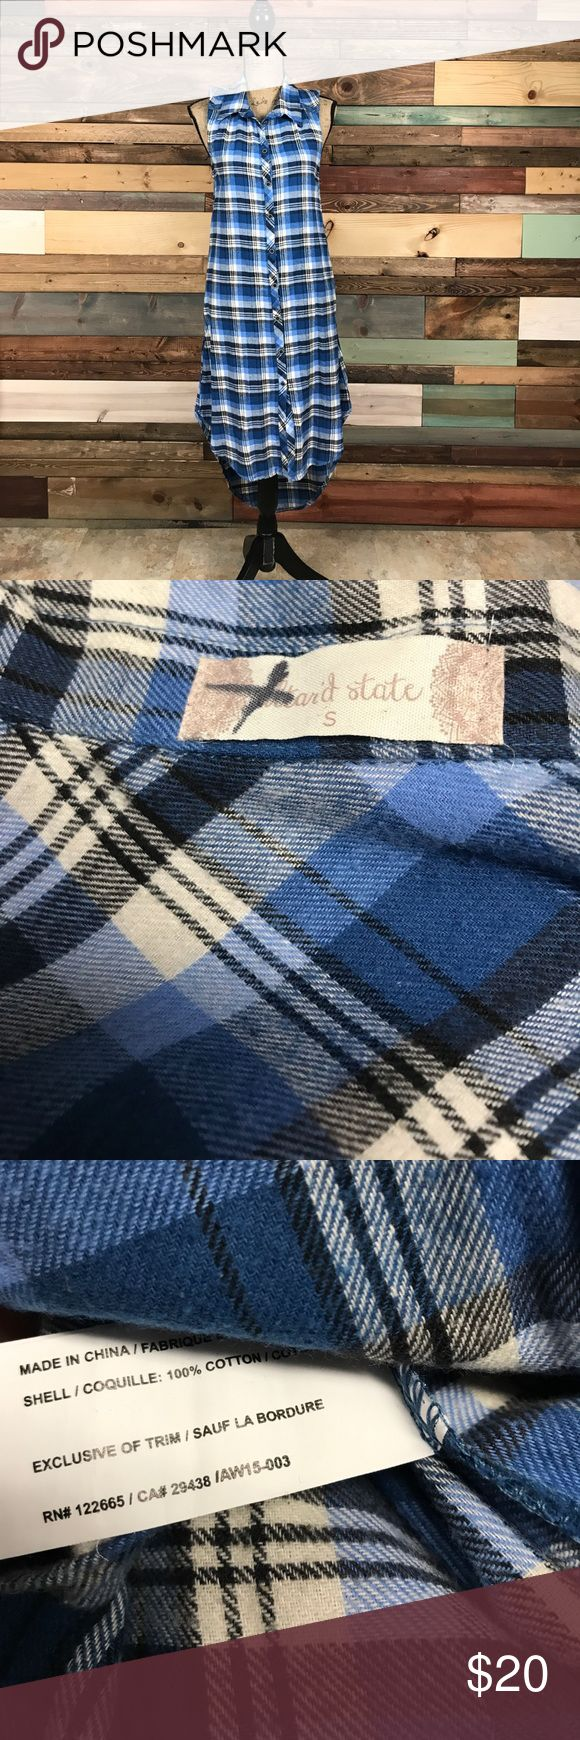 """Altar'd State Cotton Blue Plaid Flannel Tunic S Altar'd State Cotton Blue Plaid Flannel Tunic S // Bust: 18"""" // Waist: 18"""" laying flat // Length: 40-47"""" // Bundle your likes and make an offer for best deals @woodsnap! Altar'd State Tops Tunics"""